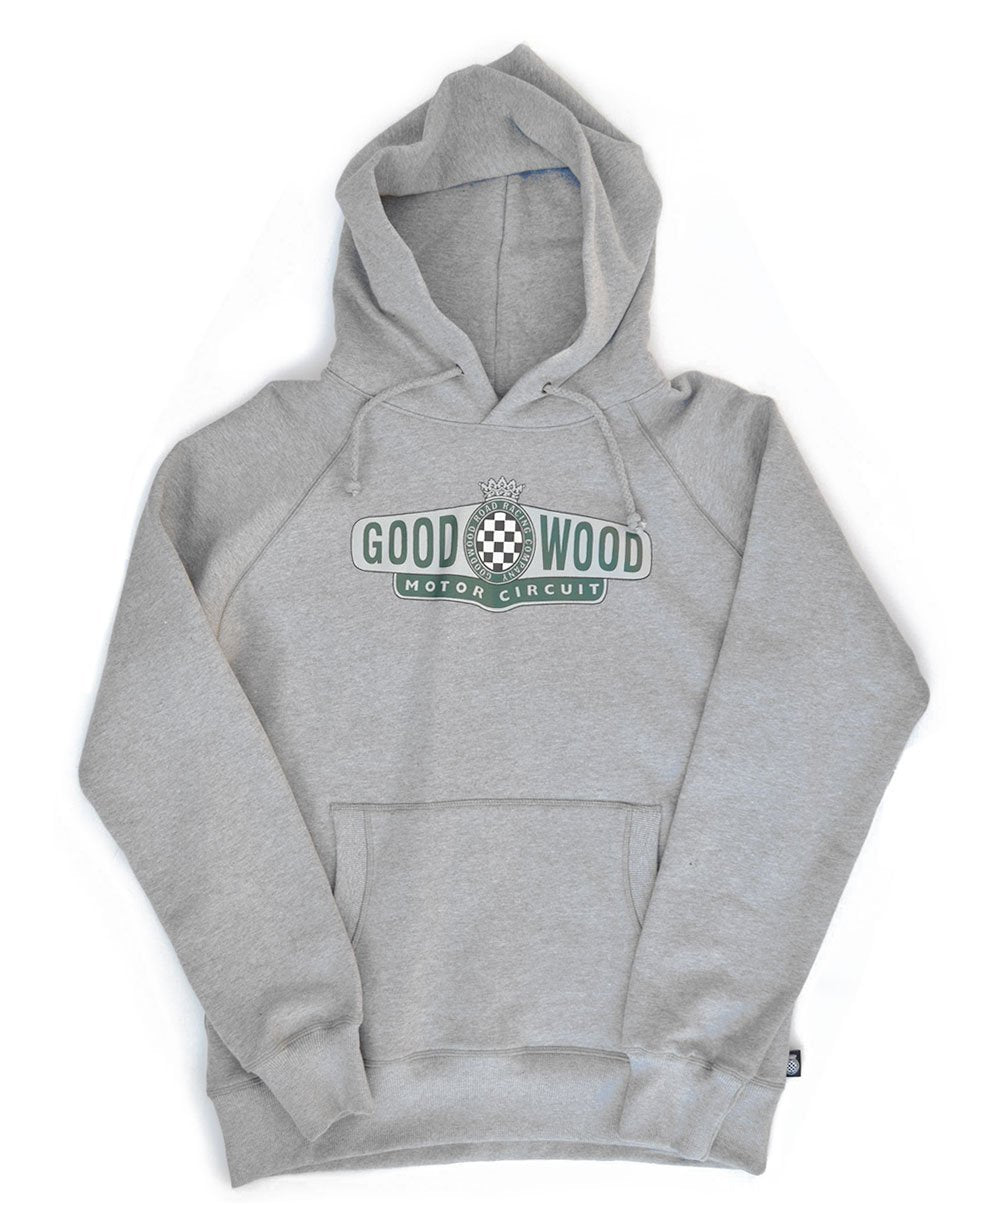 Goodwood Motor Circuit Cotton Grey Melange Unisex Hoody